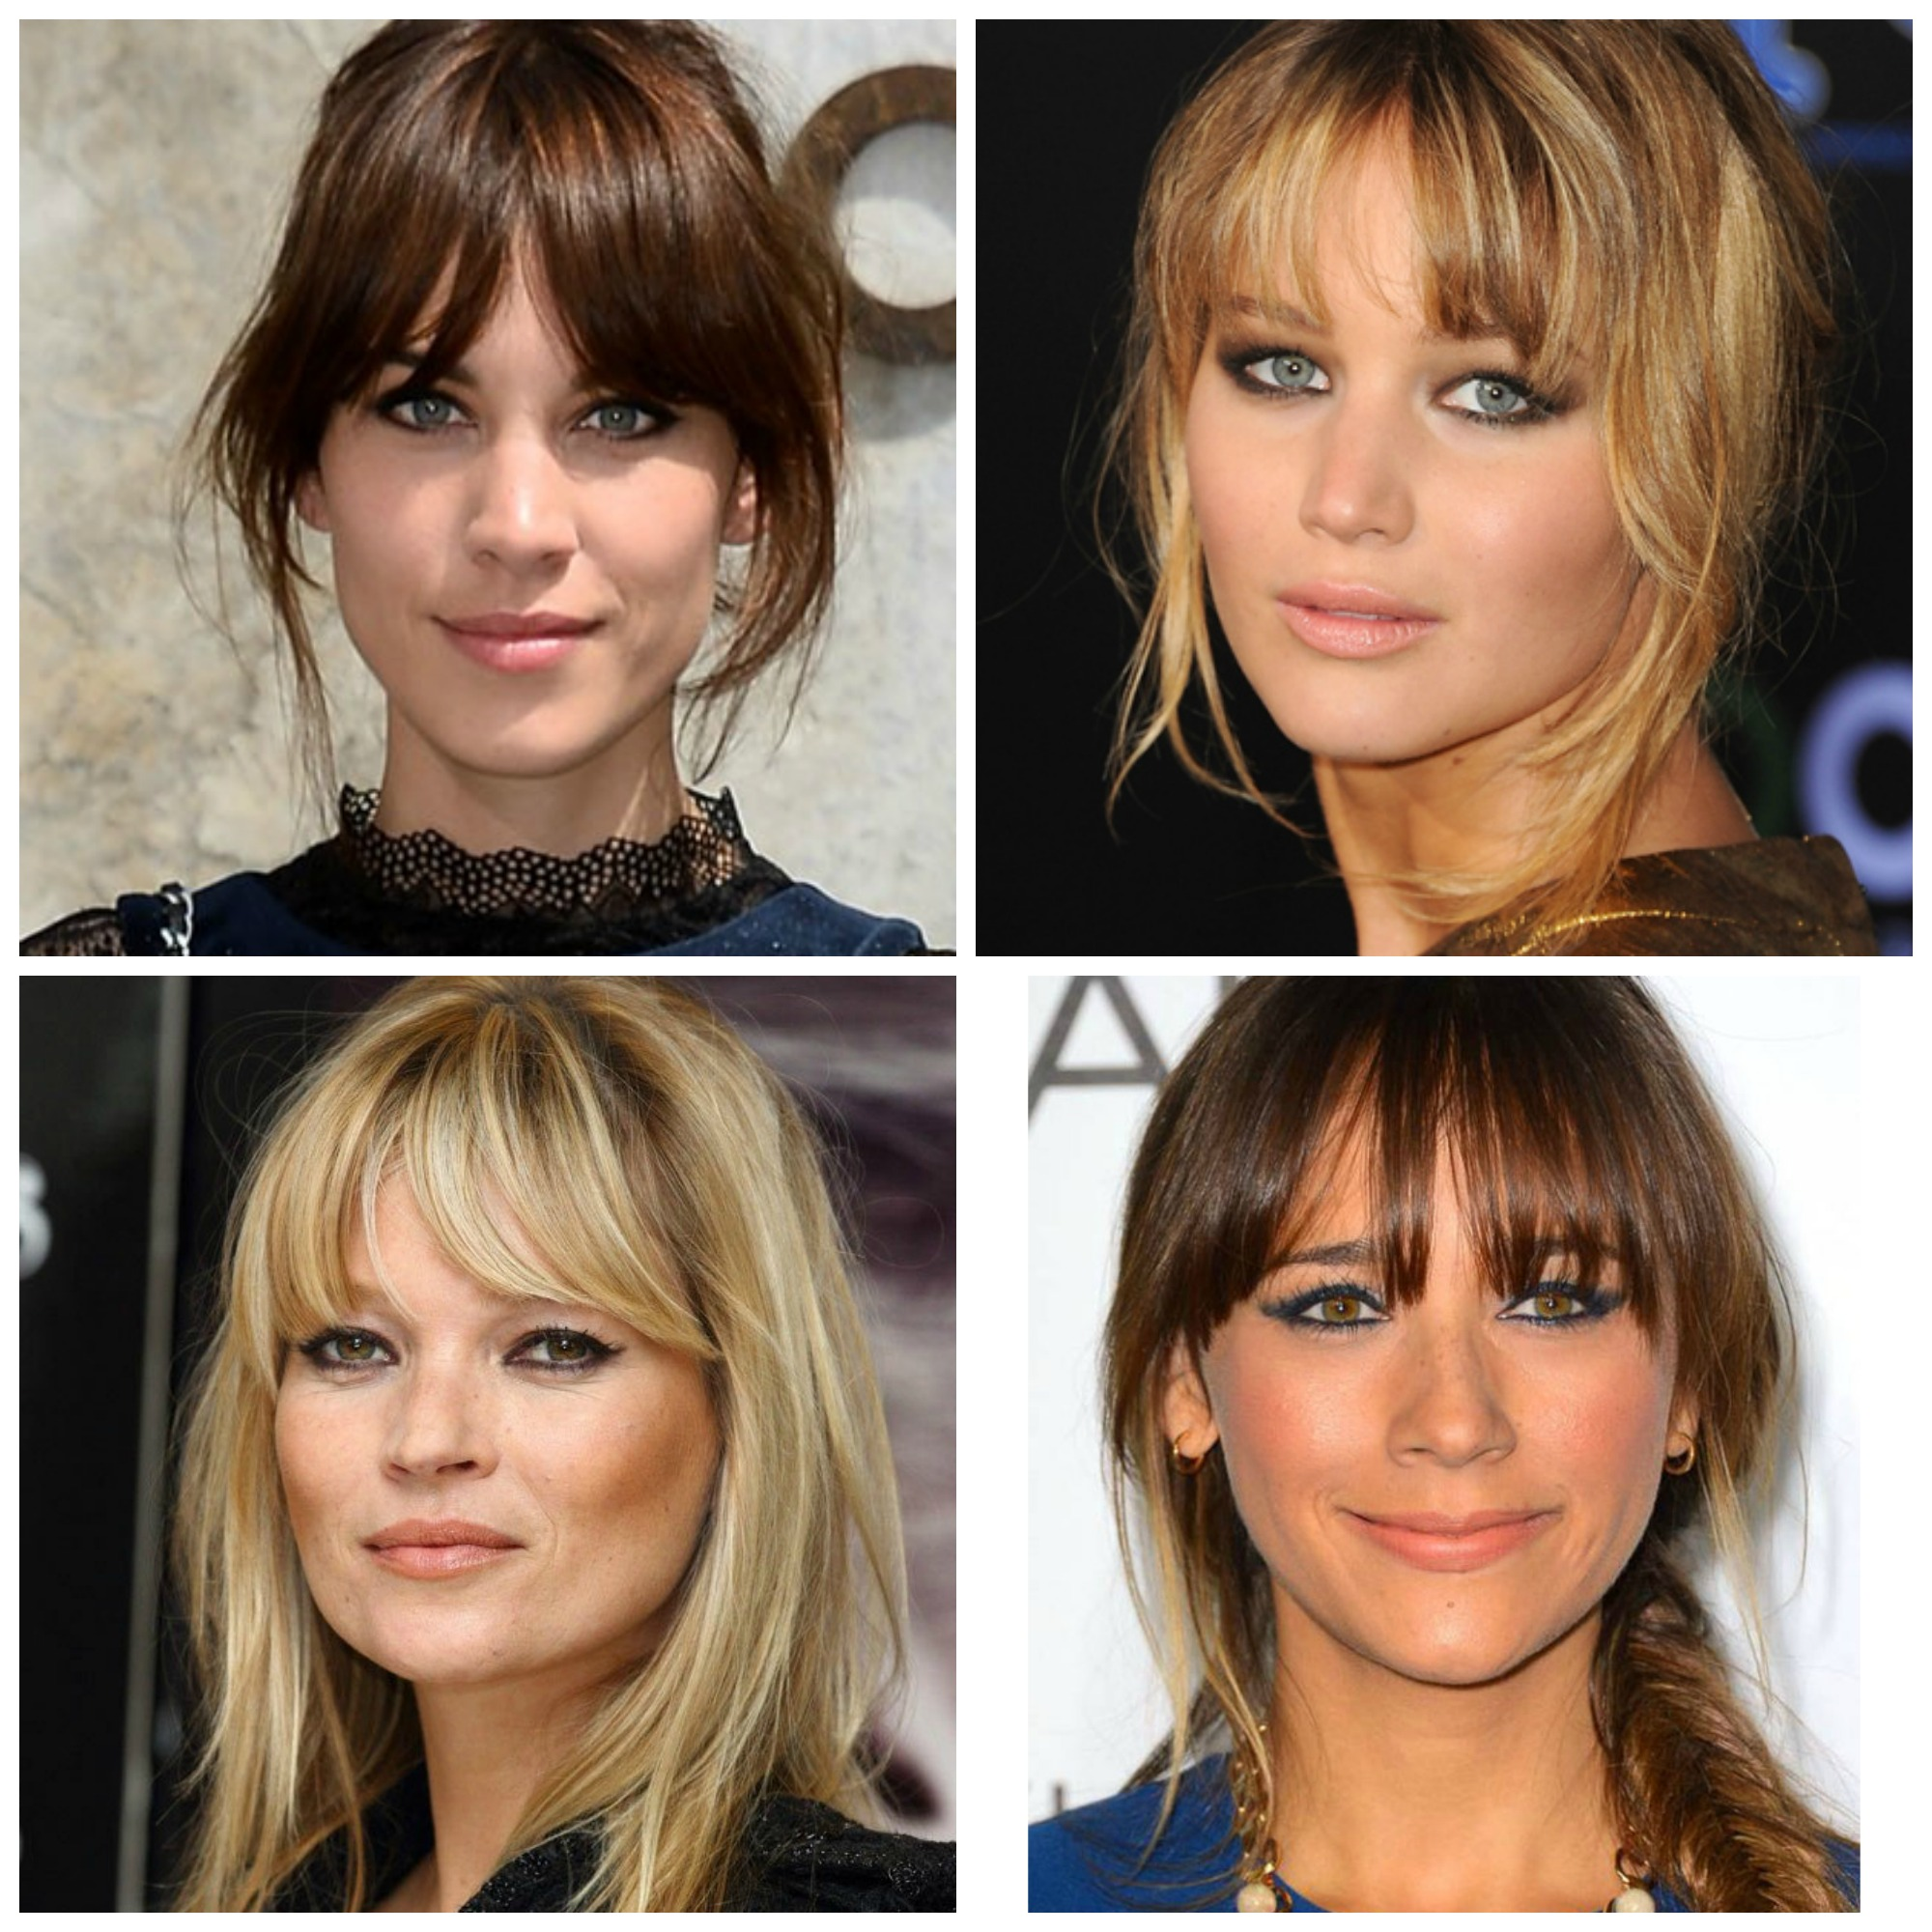 Clockwise from top right: Alexa Chung, Jennifer Lawrence, Rashida Jones, and Kate Moss